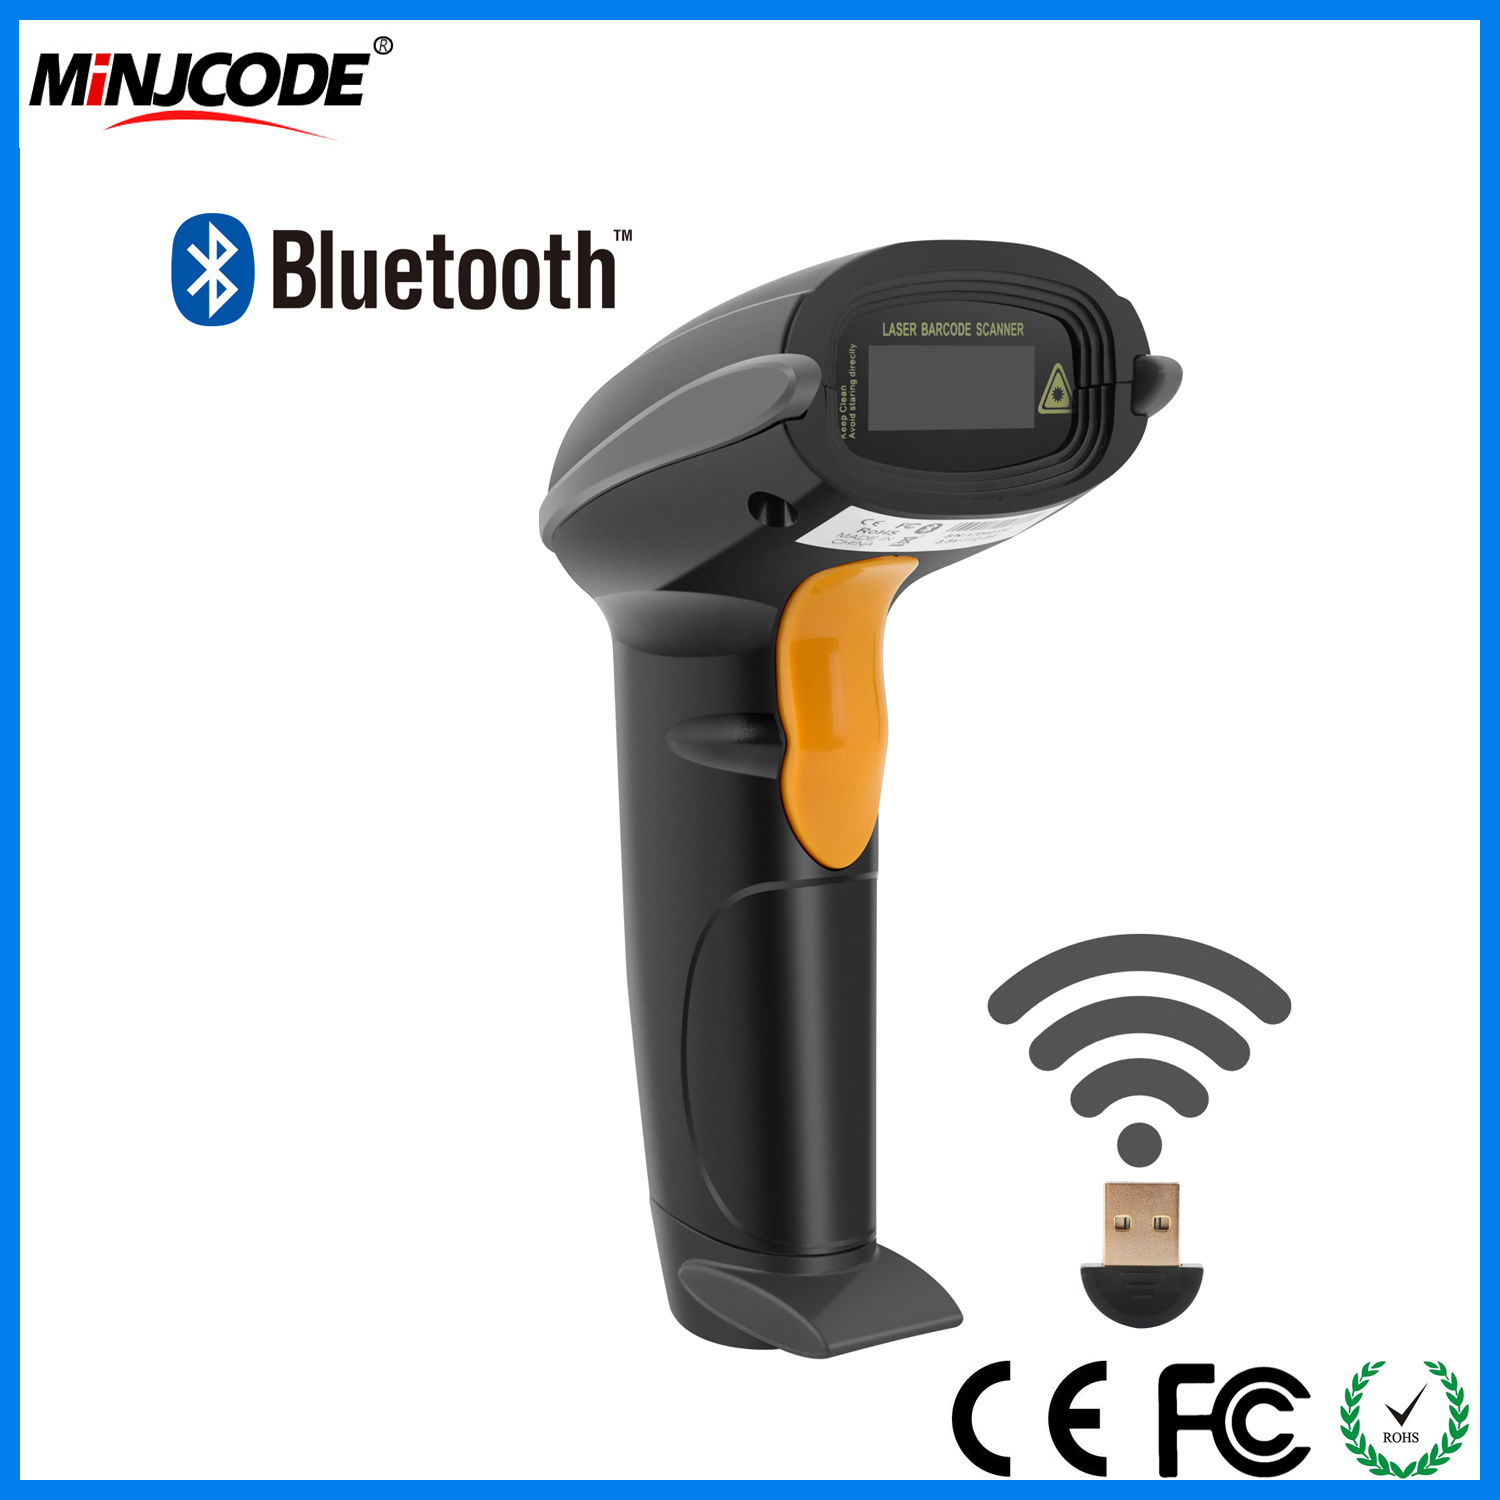 USB Barcode Scanner Wireless Rechargeable Handheld Automatic